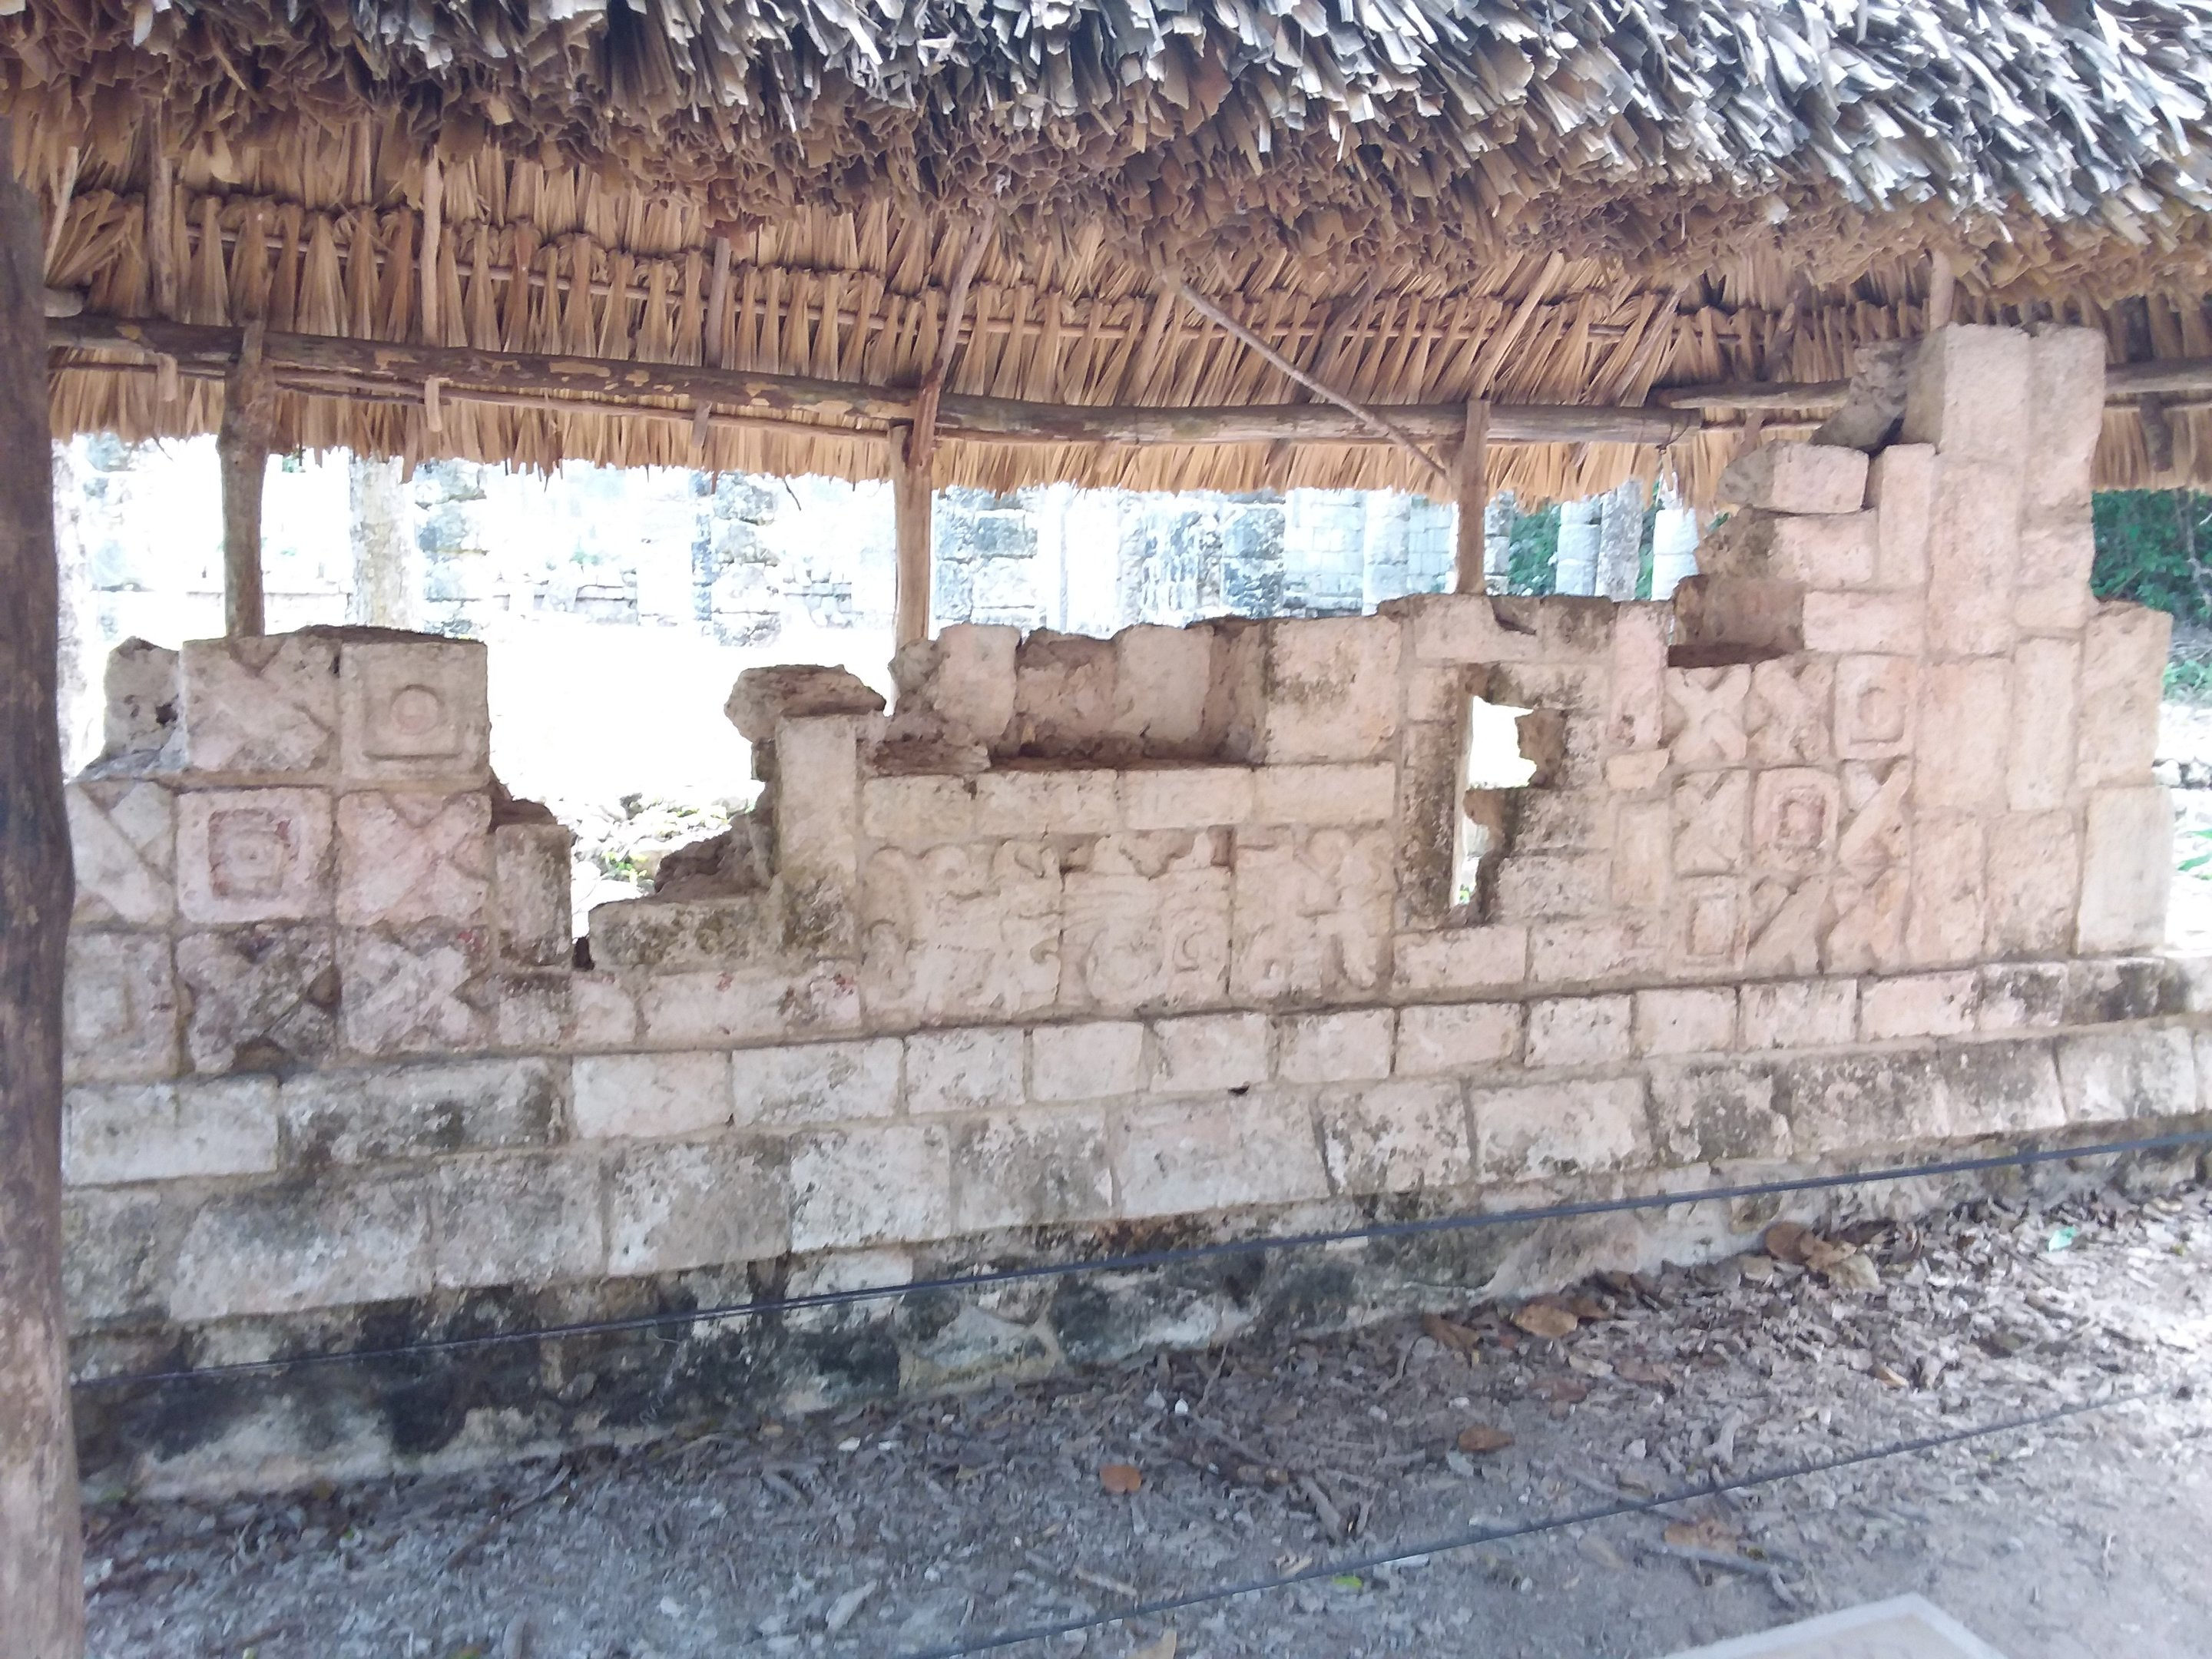 20181224_082400-jpg.48204_Chichen Itza (Not So Much a Story Than It Is Pictures)_Travel Stories_Squat the Planet_4:02 PM